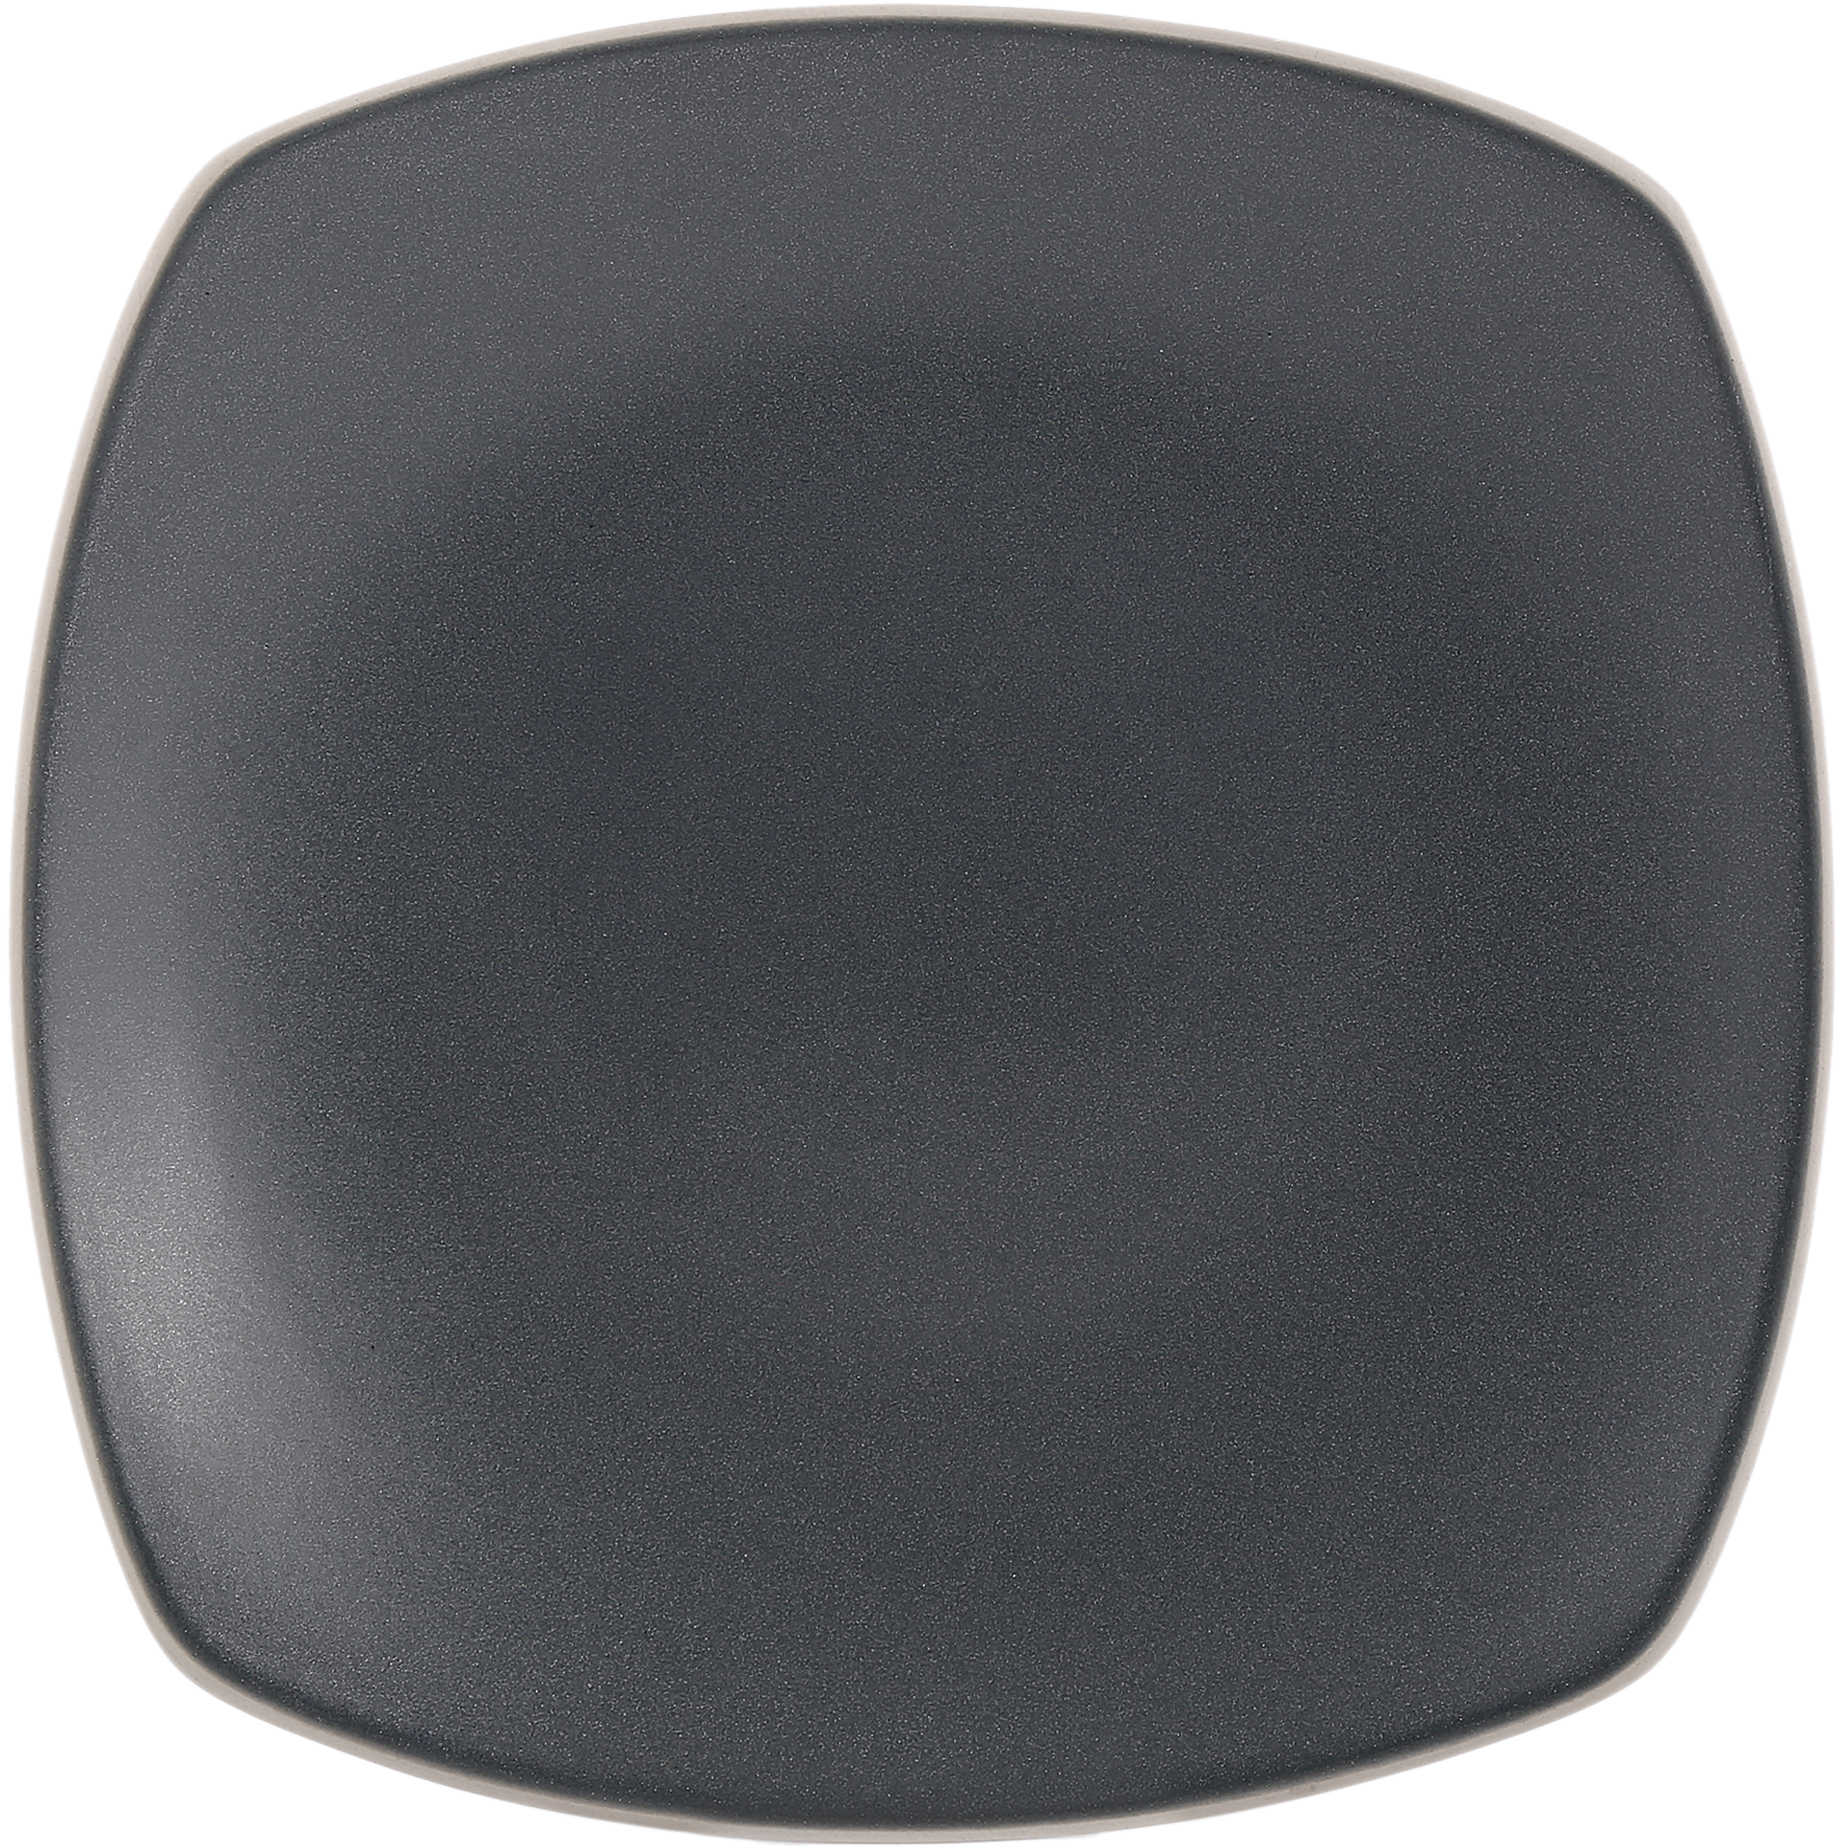 Bed bath beyond pizza stone - Artisanal Kitchen Supply Edge Square Dinner Plate In Grey Bed Bath Beyond